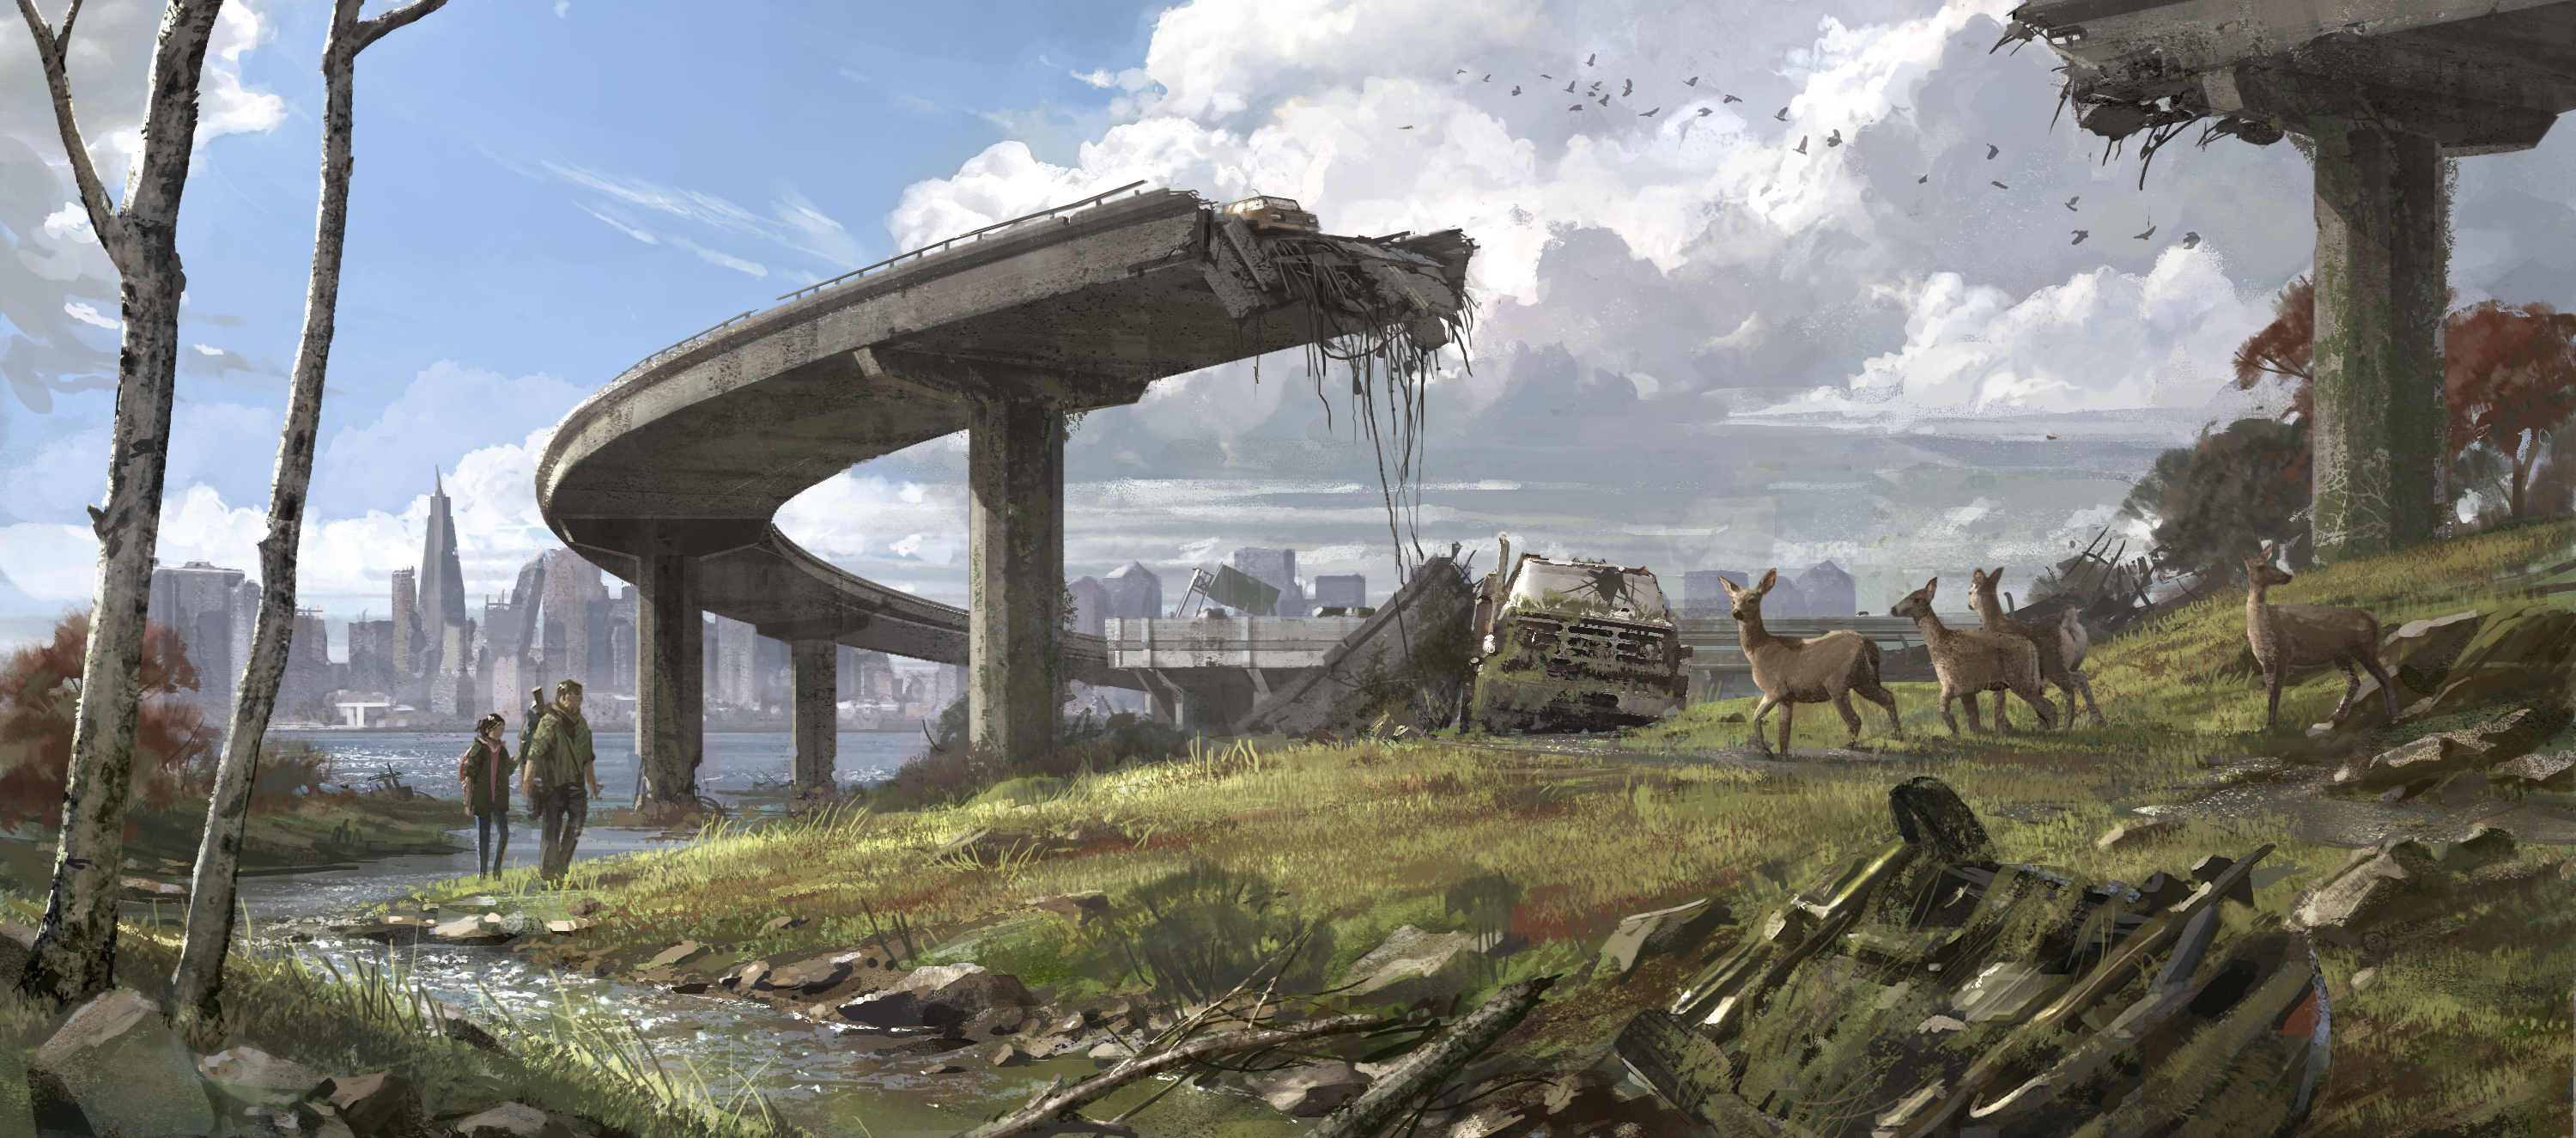 The Last Of Us Hd Wallpaper Background Image 3000x1325 Id 270040 Wallpaper Abyss